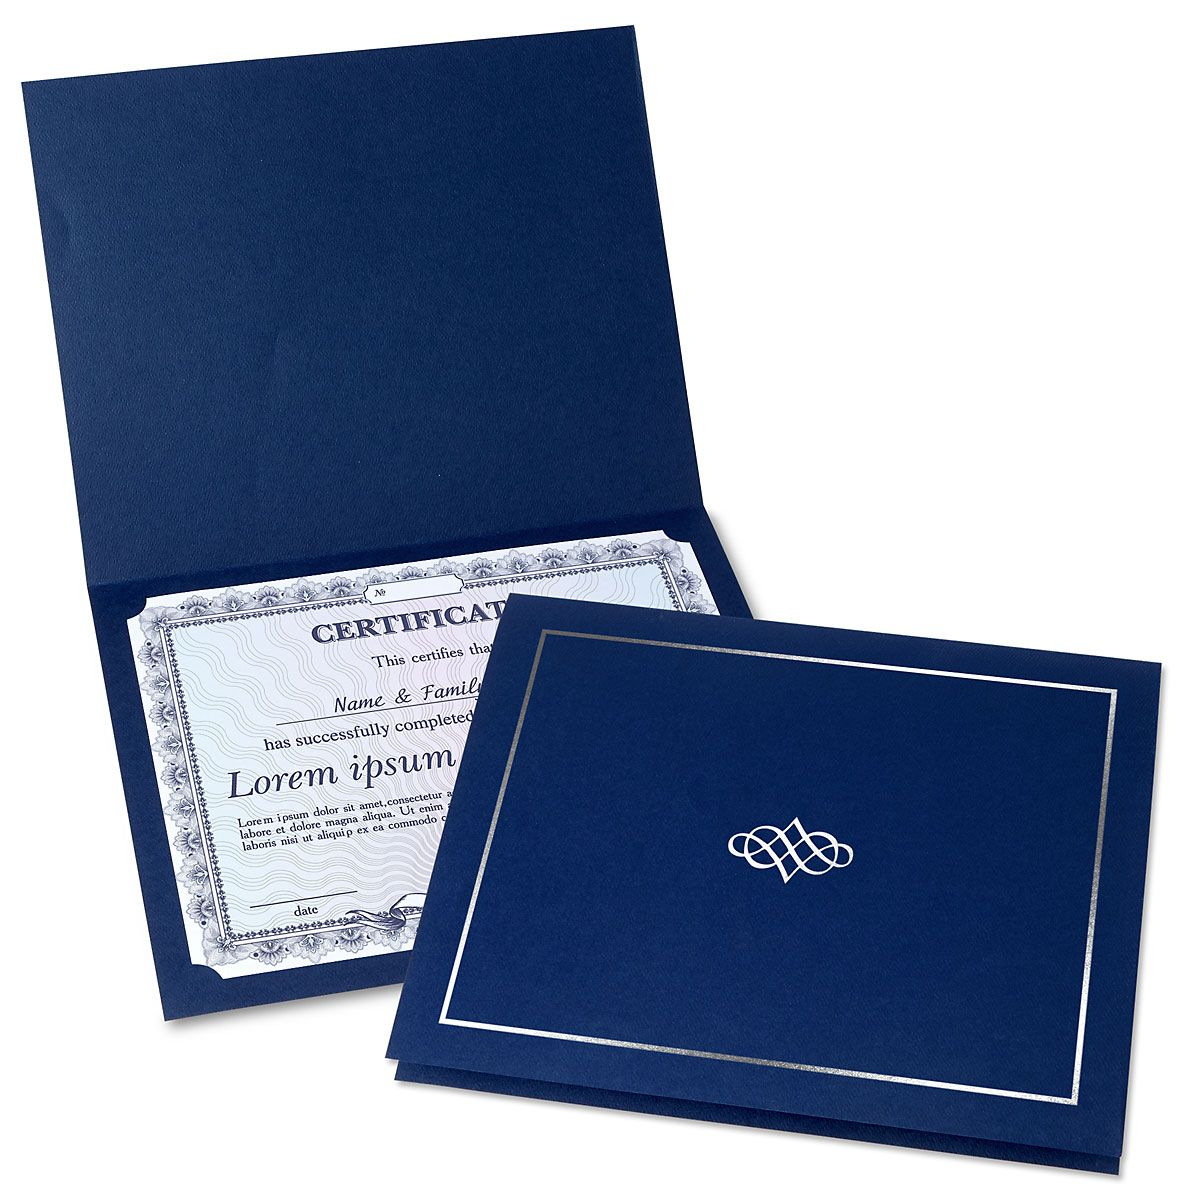 Ornate Blue Certificate Folder with Silver Border/Crest